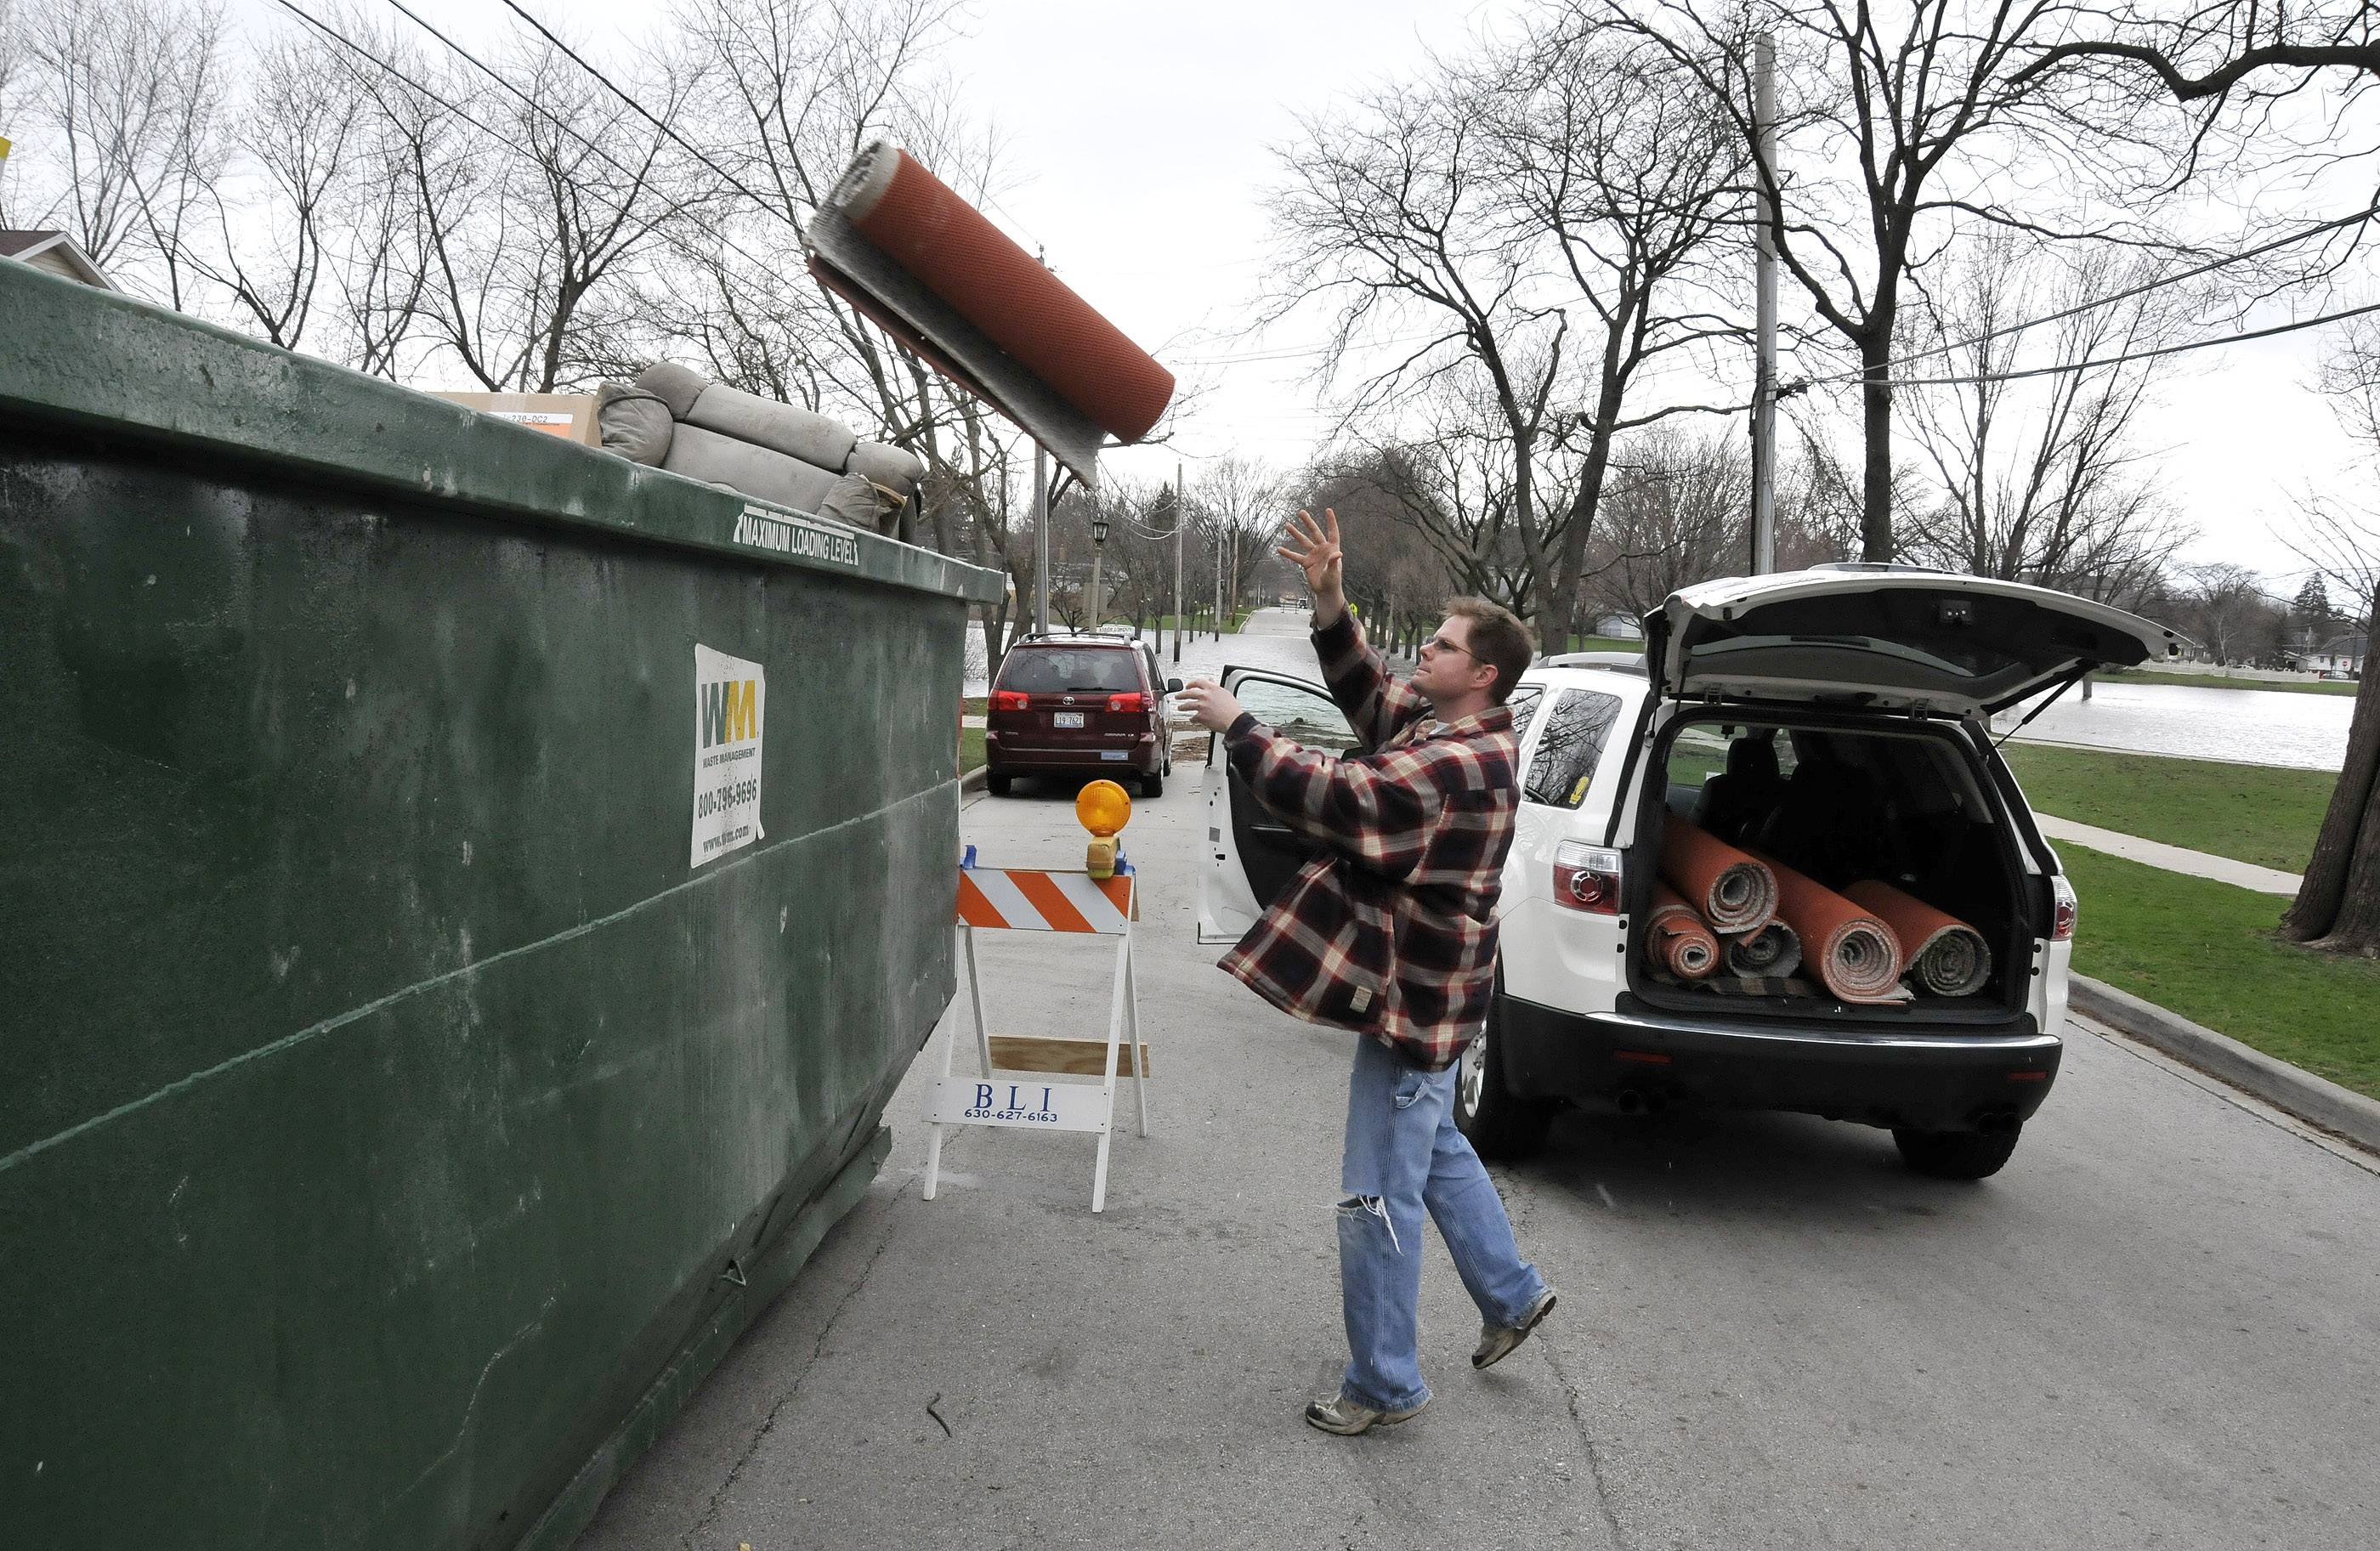 Terrace View Park in Lombard is still flooded over the banks, onto surrounding streets, and into surrounding basements. Greenfield Avenue by the park is one of several locations in Lombard where large dumpsters have been placed so residents can easily dispose of ruined items. Resident Kevin Reinheimer tosses his damaged carpet from his basement into the dumpster.